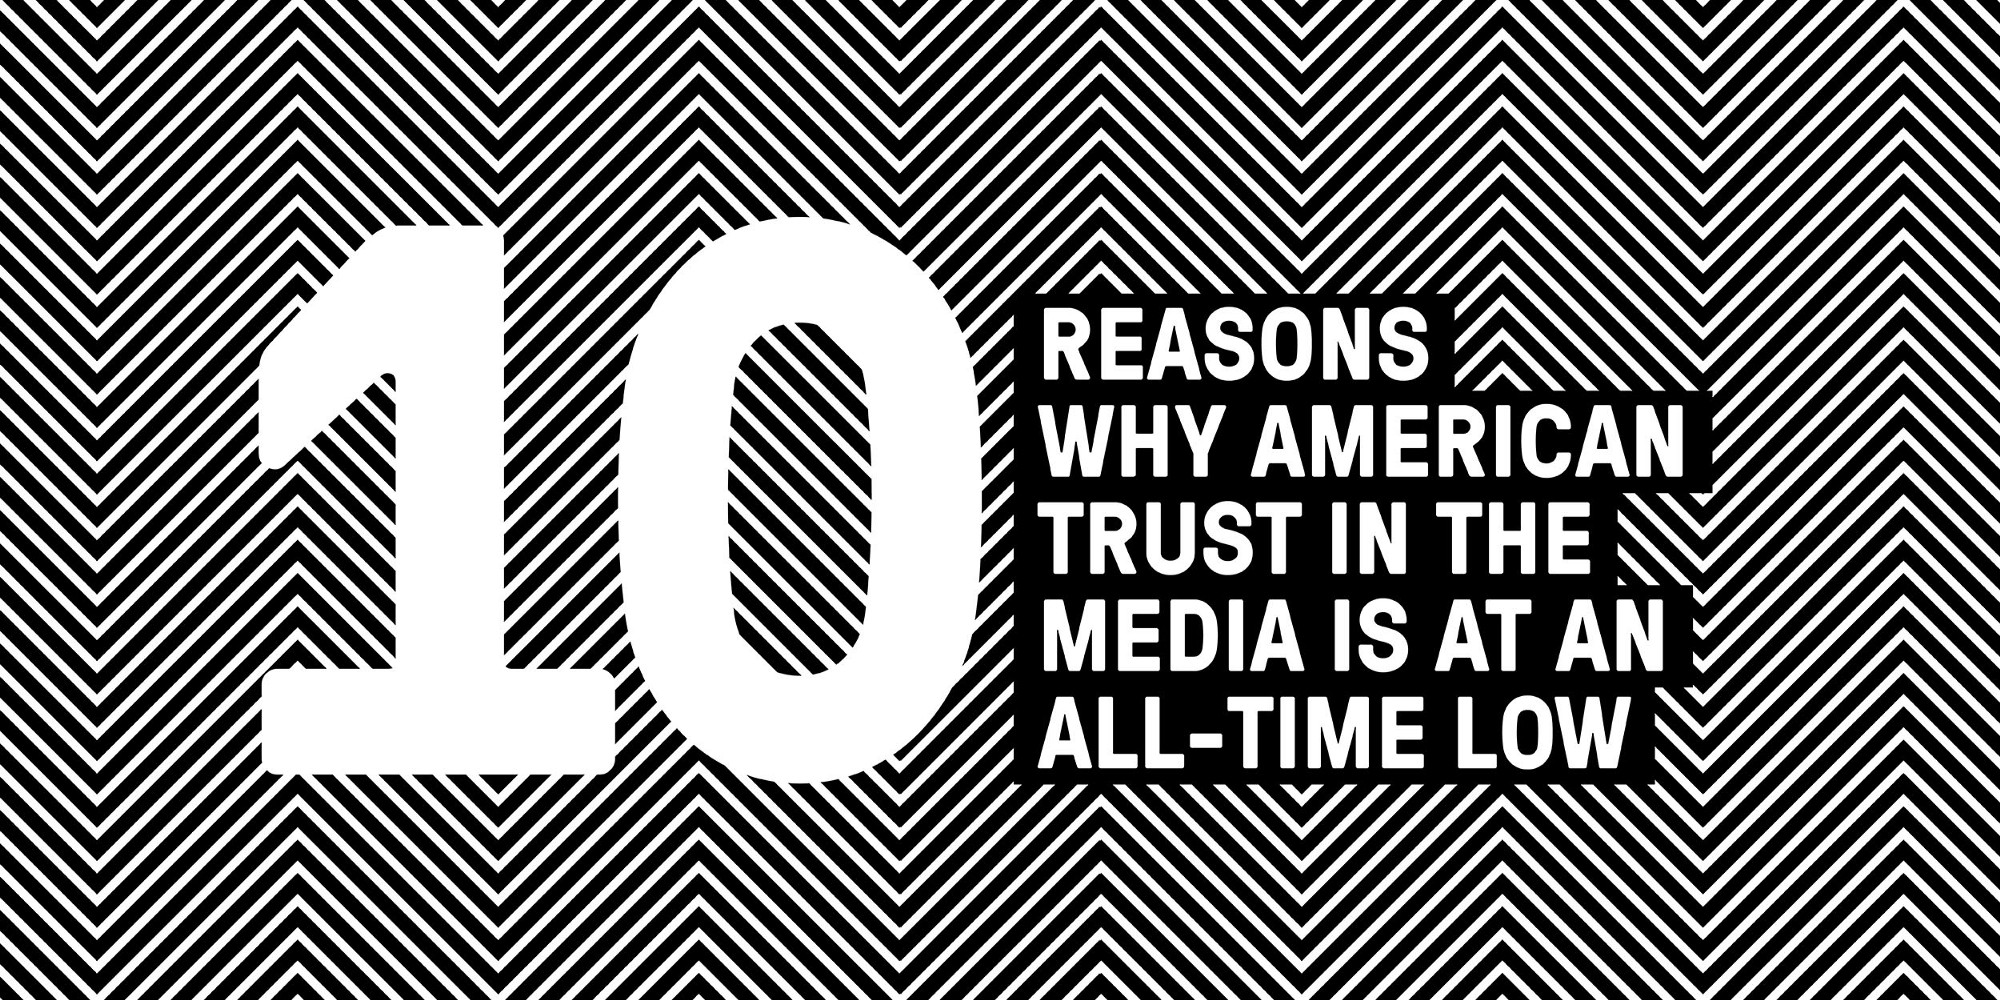 The pivotal role of the media with how americans think and what they believe